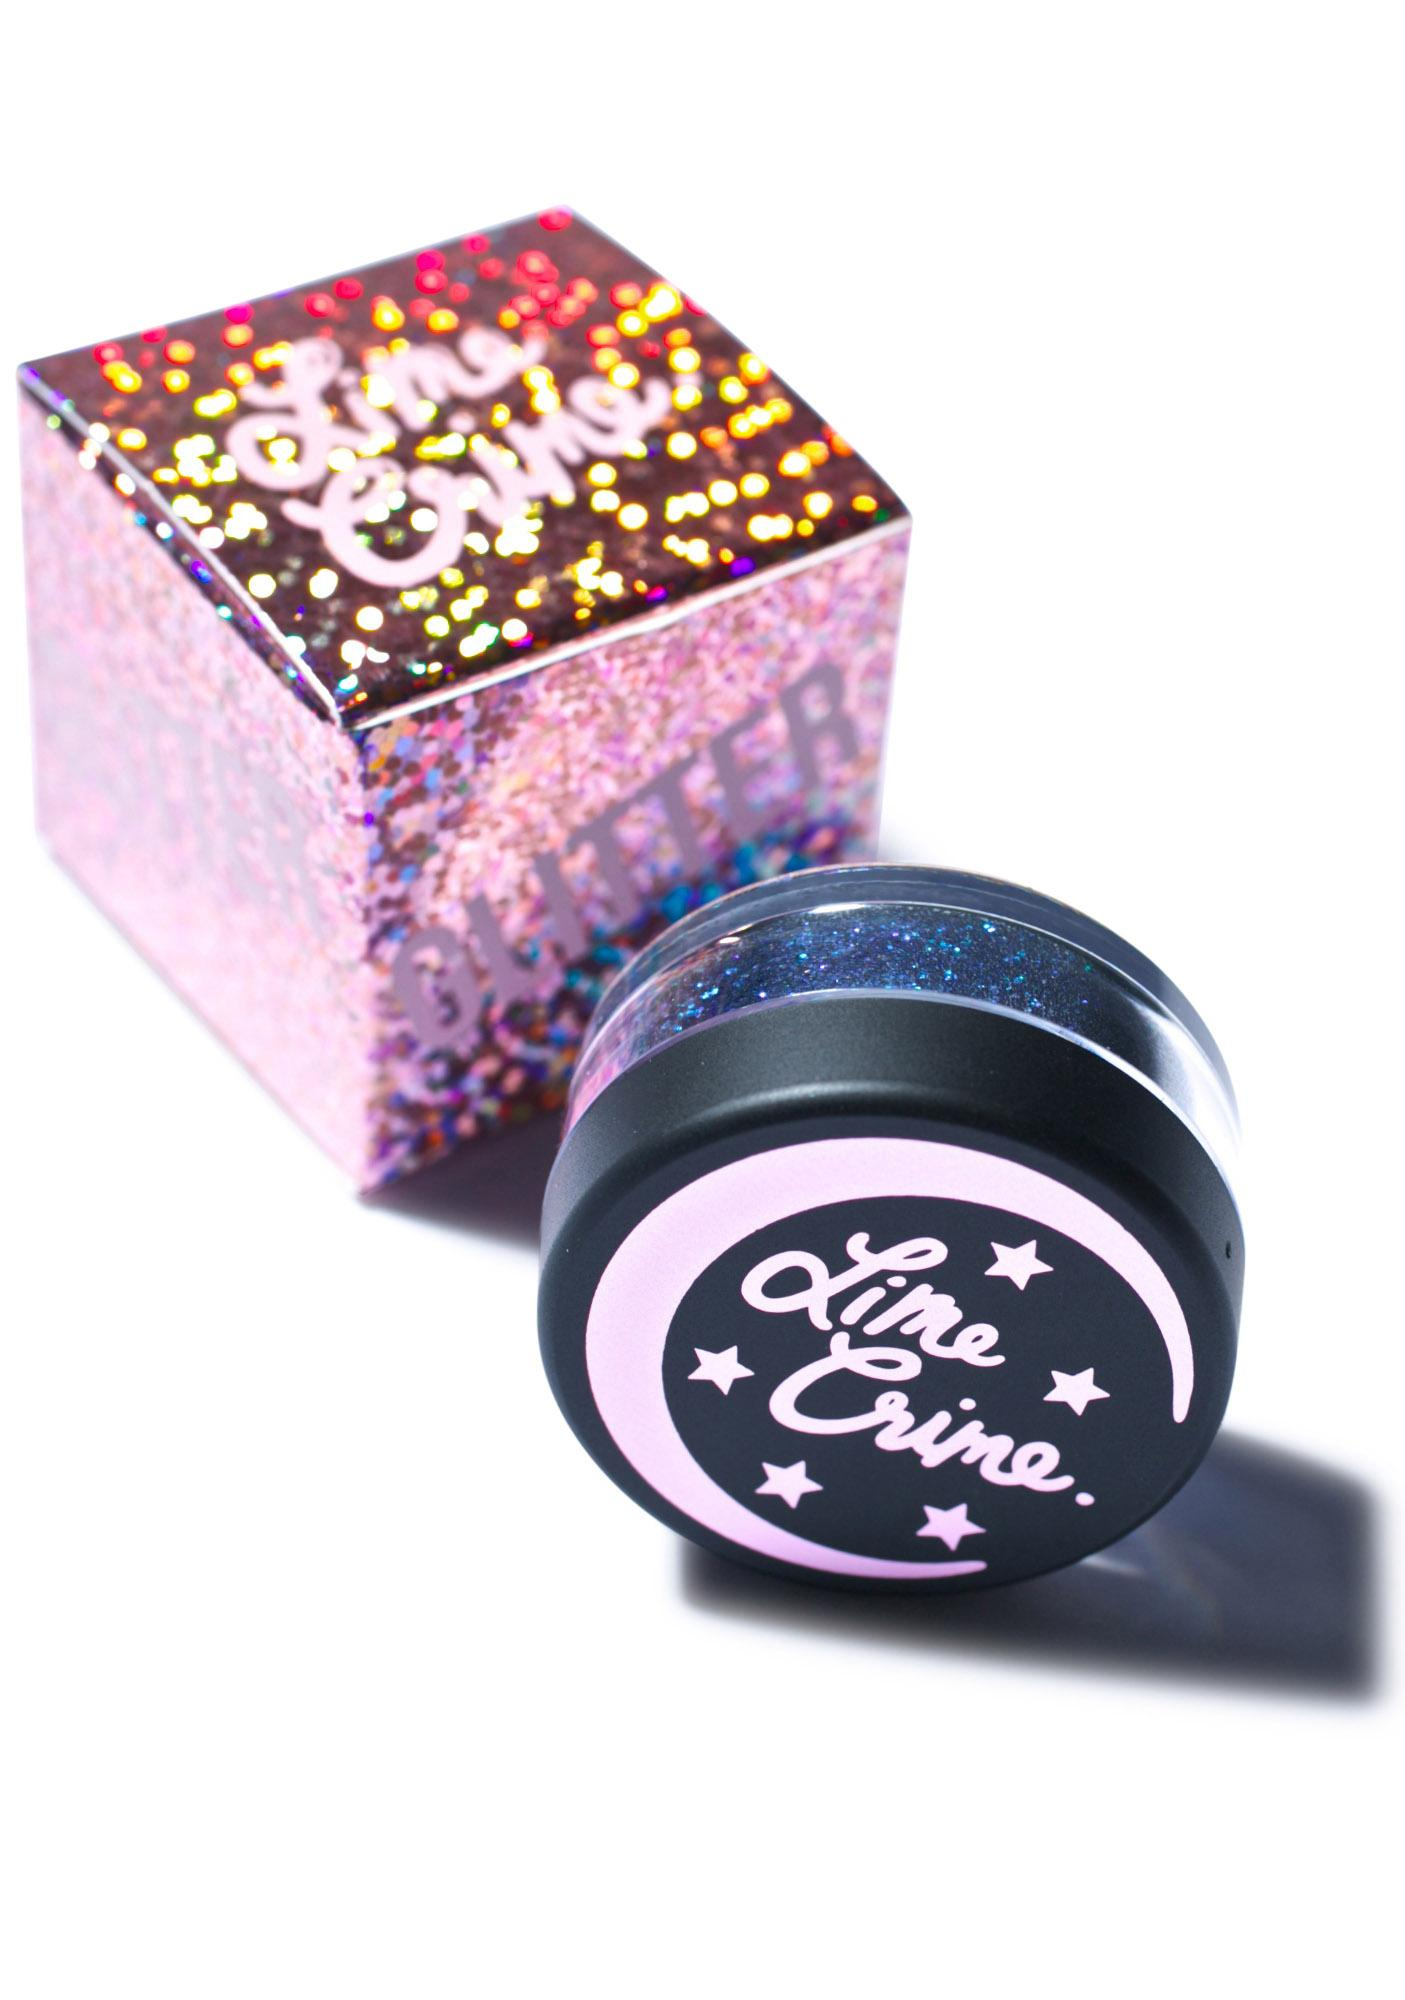 Lime Crime Aquarius Zodiac Glitter